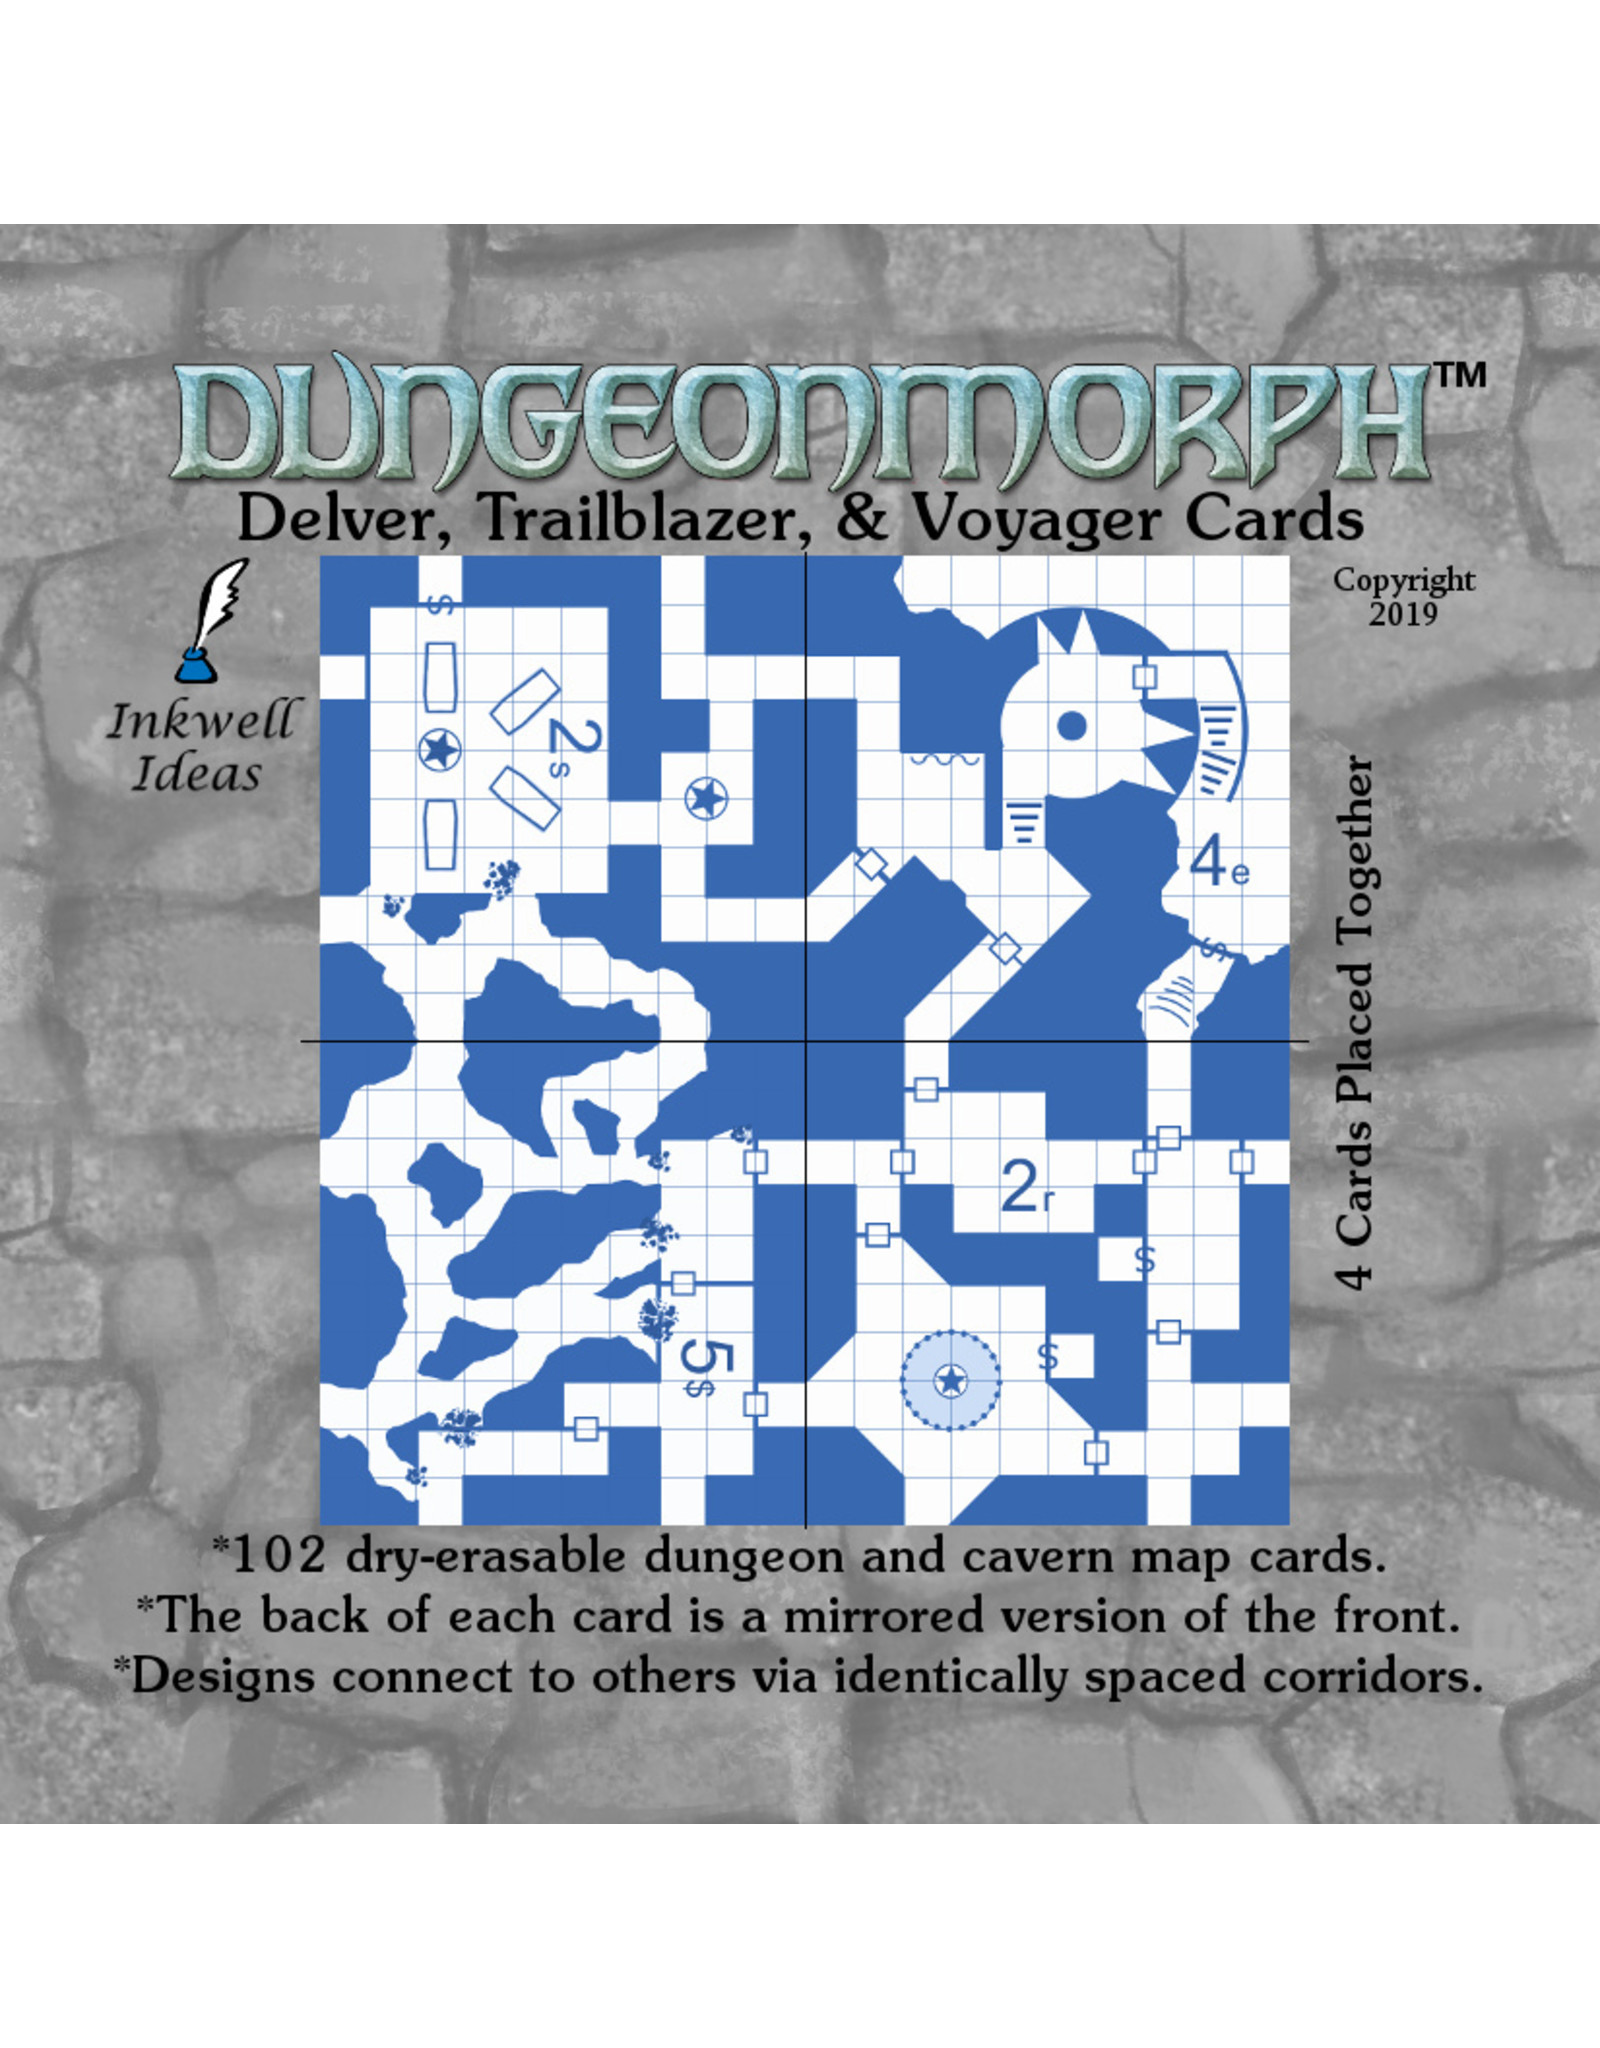 Role Playing DungeonMorph Cards: Delver, Trailblazer, & Voyager